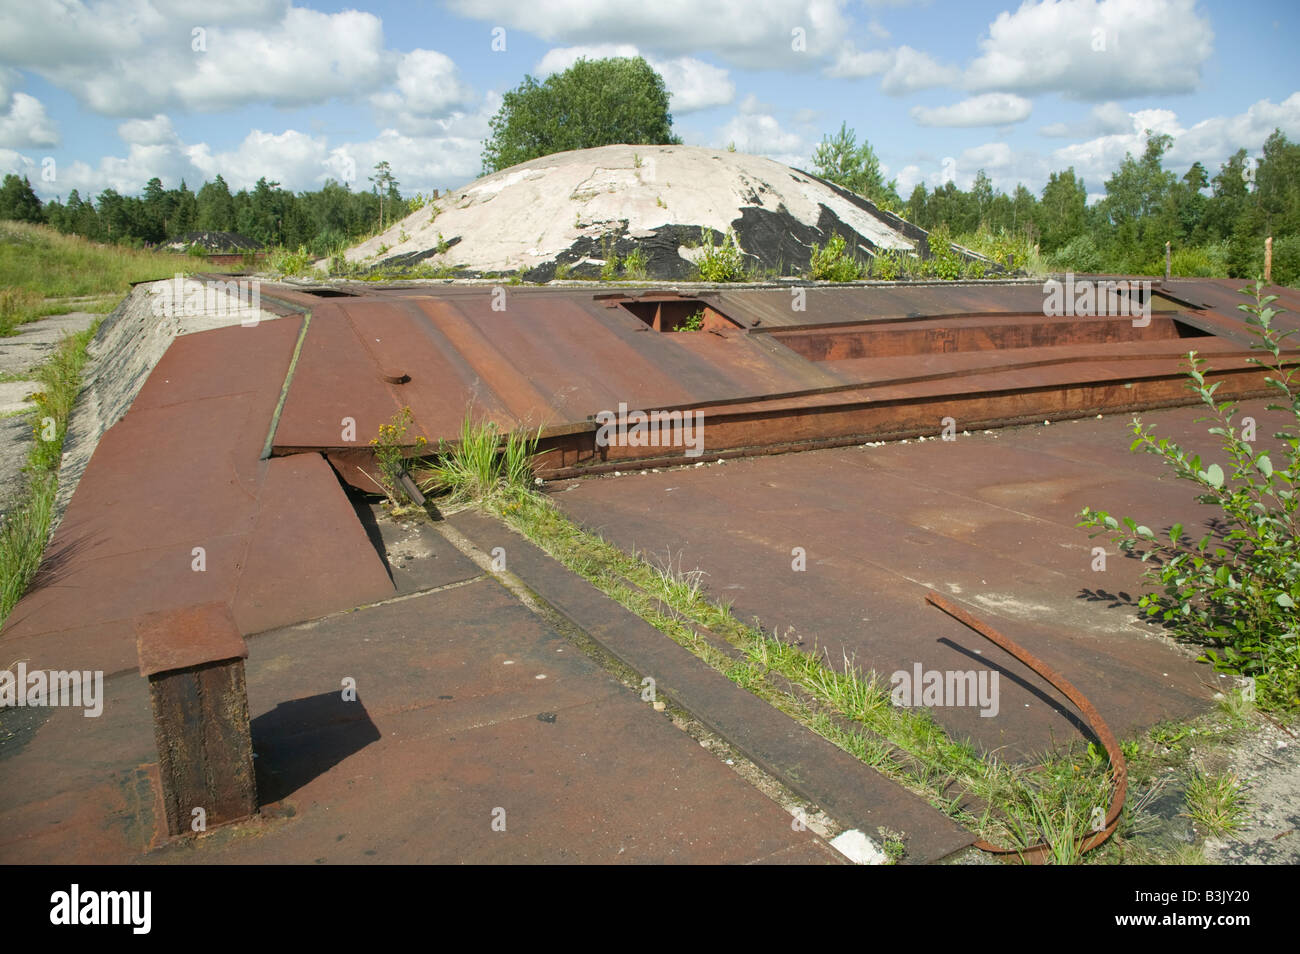 Ruined Soviet nuclear missile base, Plokstine, Lithuania. - Stock Image